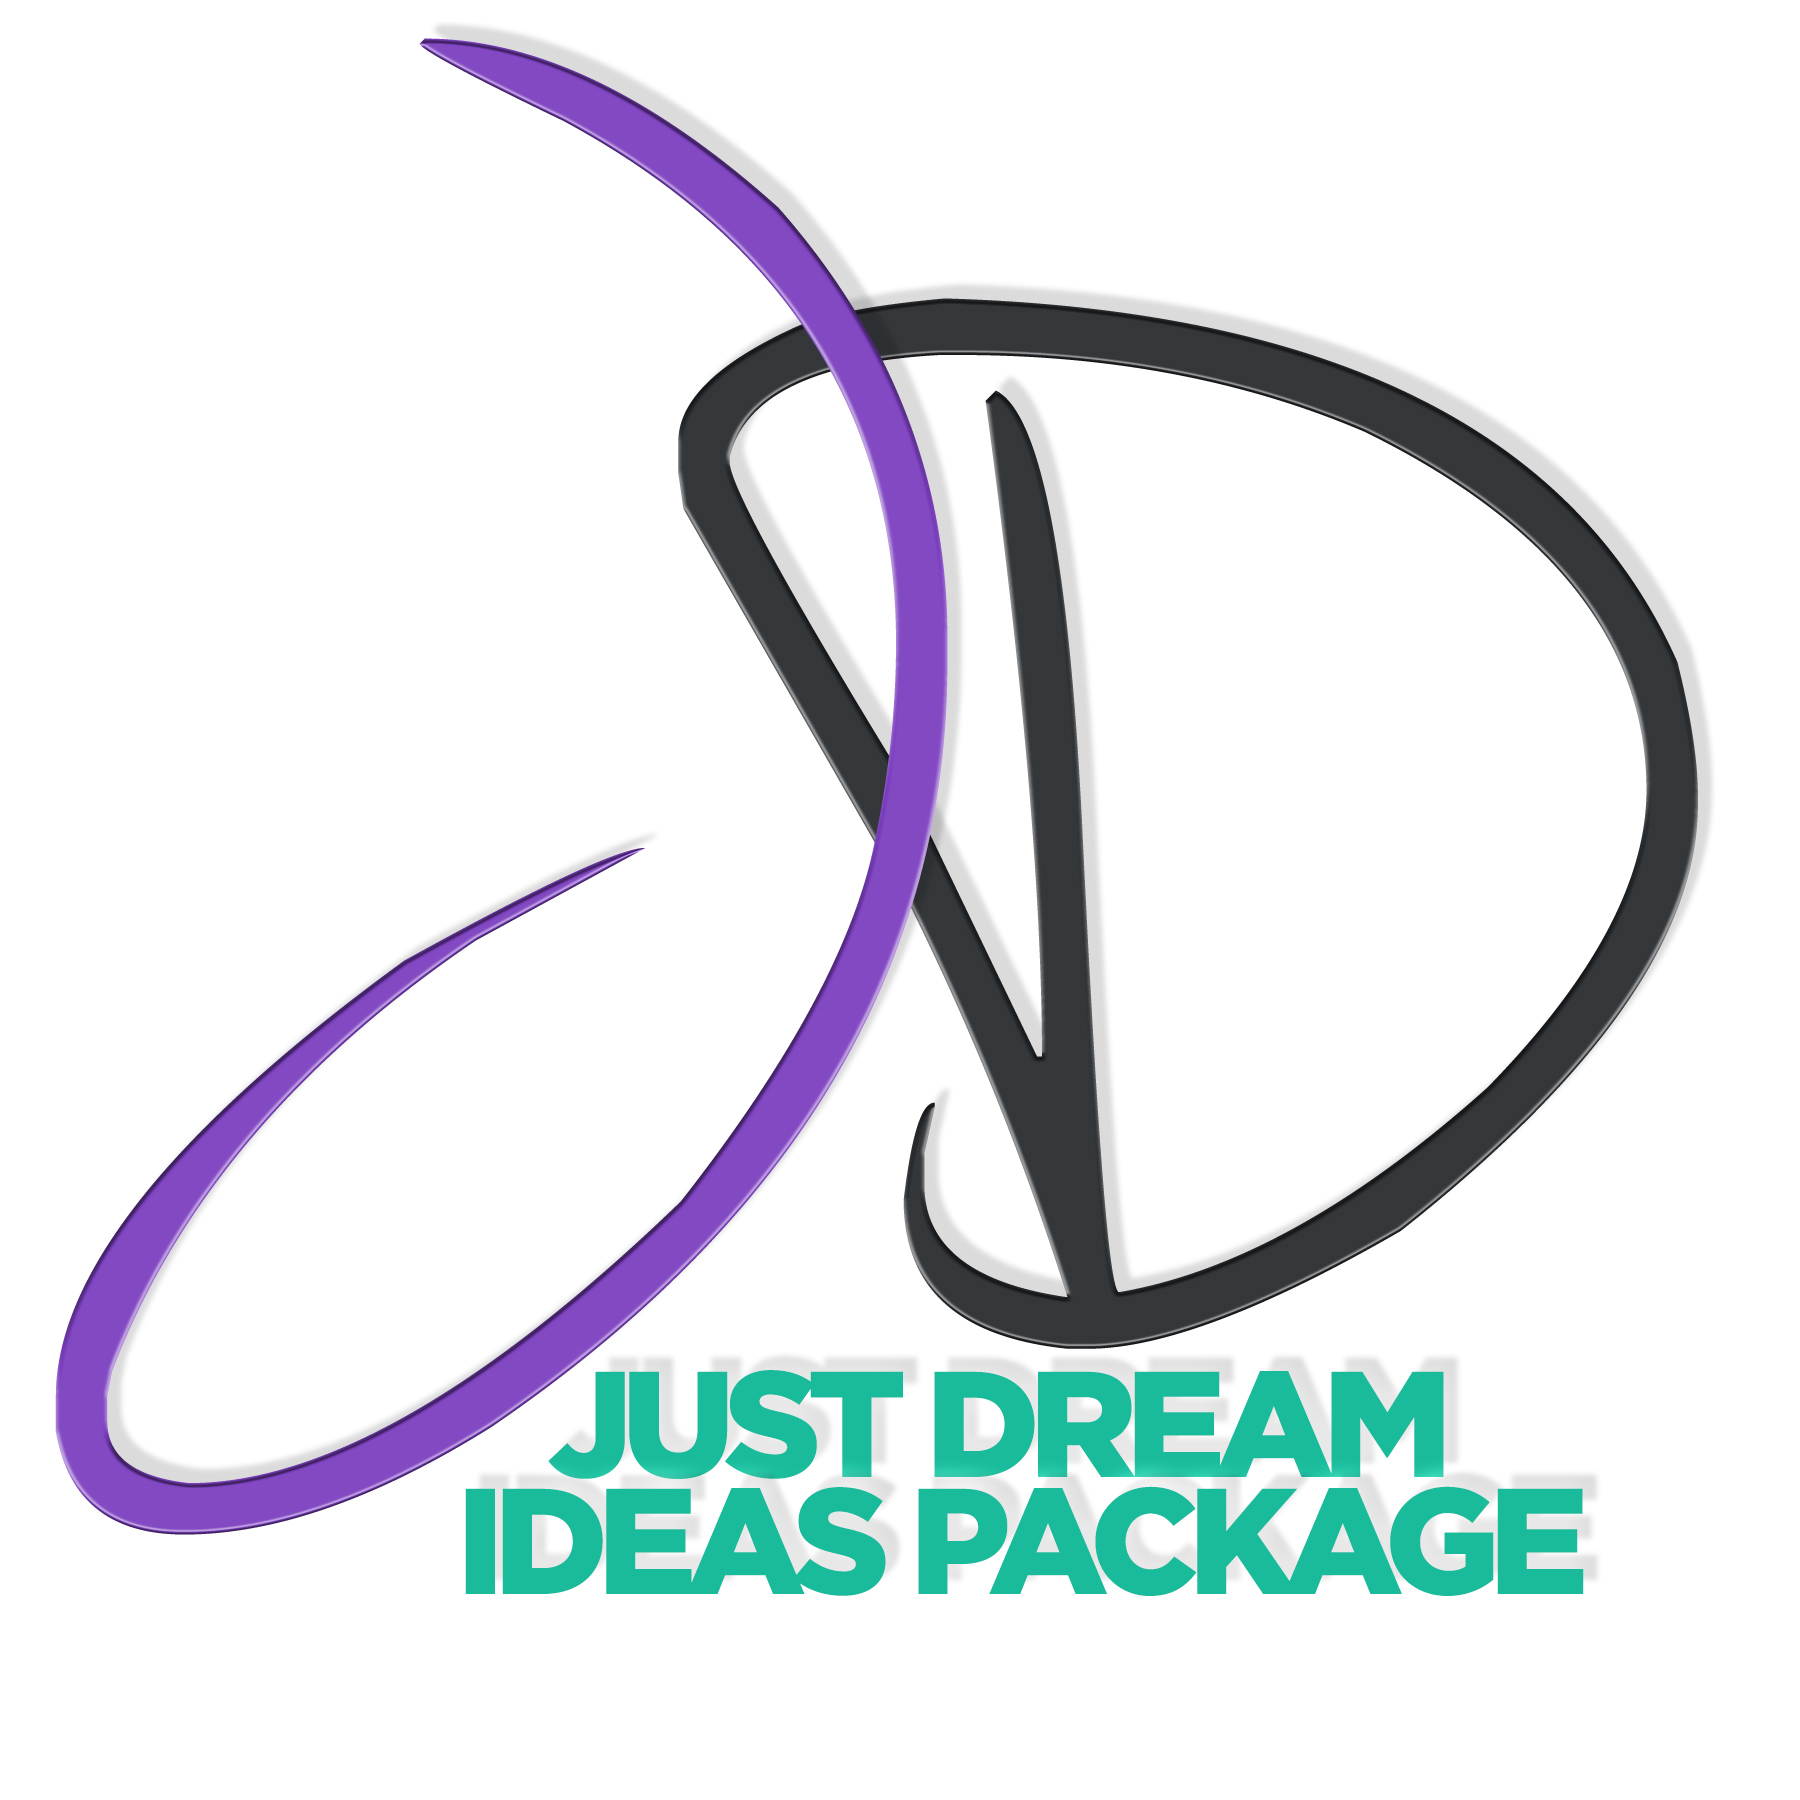 JustDreamProduct